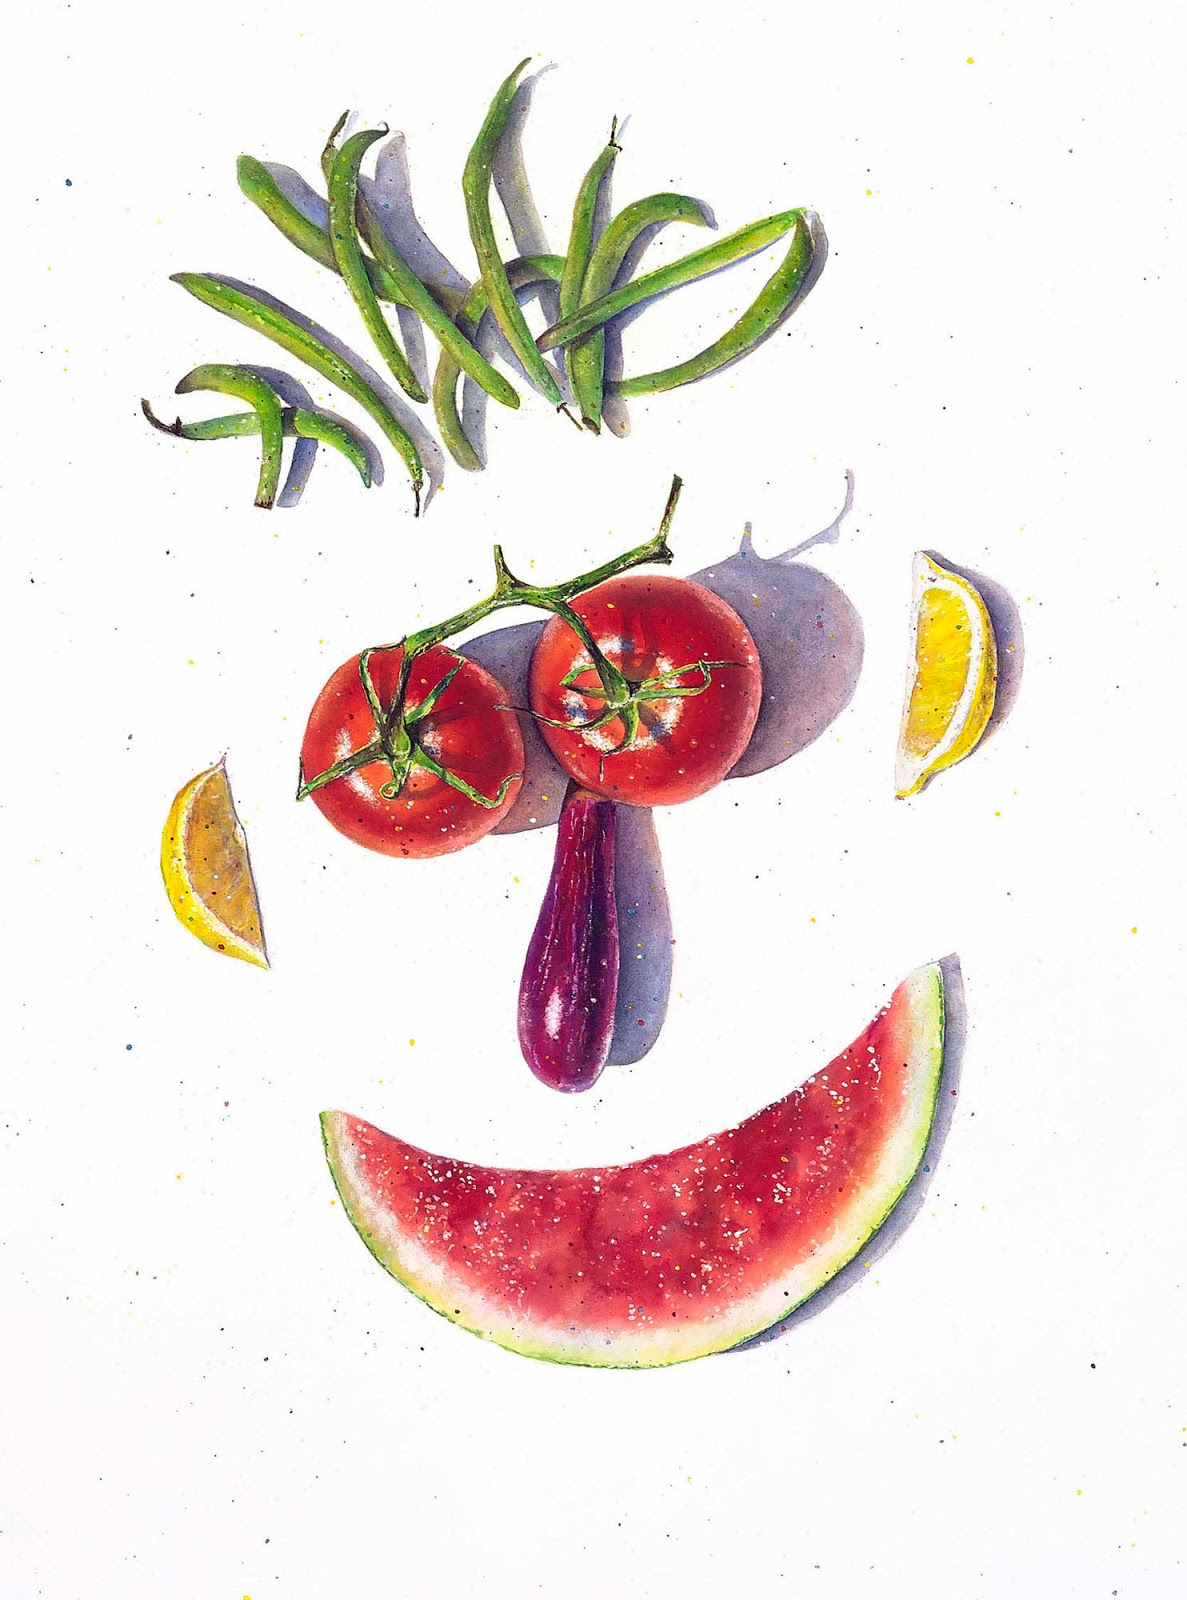 creative illustrations of food, food faces